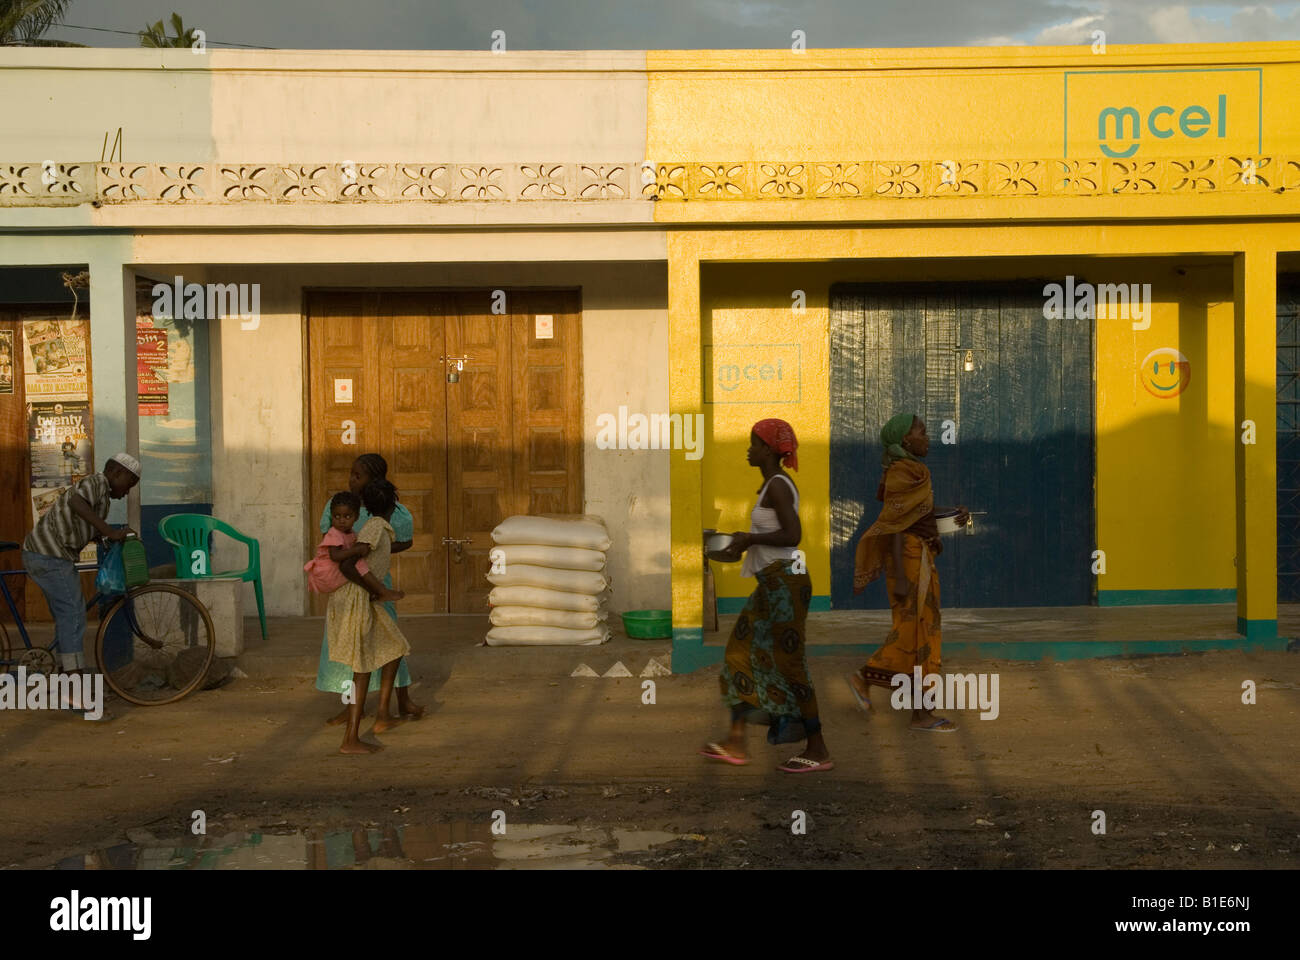 Unpaved street in the late afternoon after a rain shower near the market of Mocimboa da Praia, northern Mozambique - Stock Image